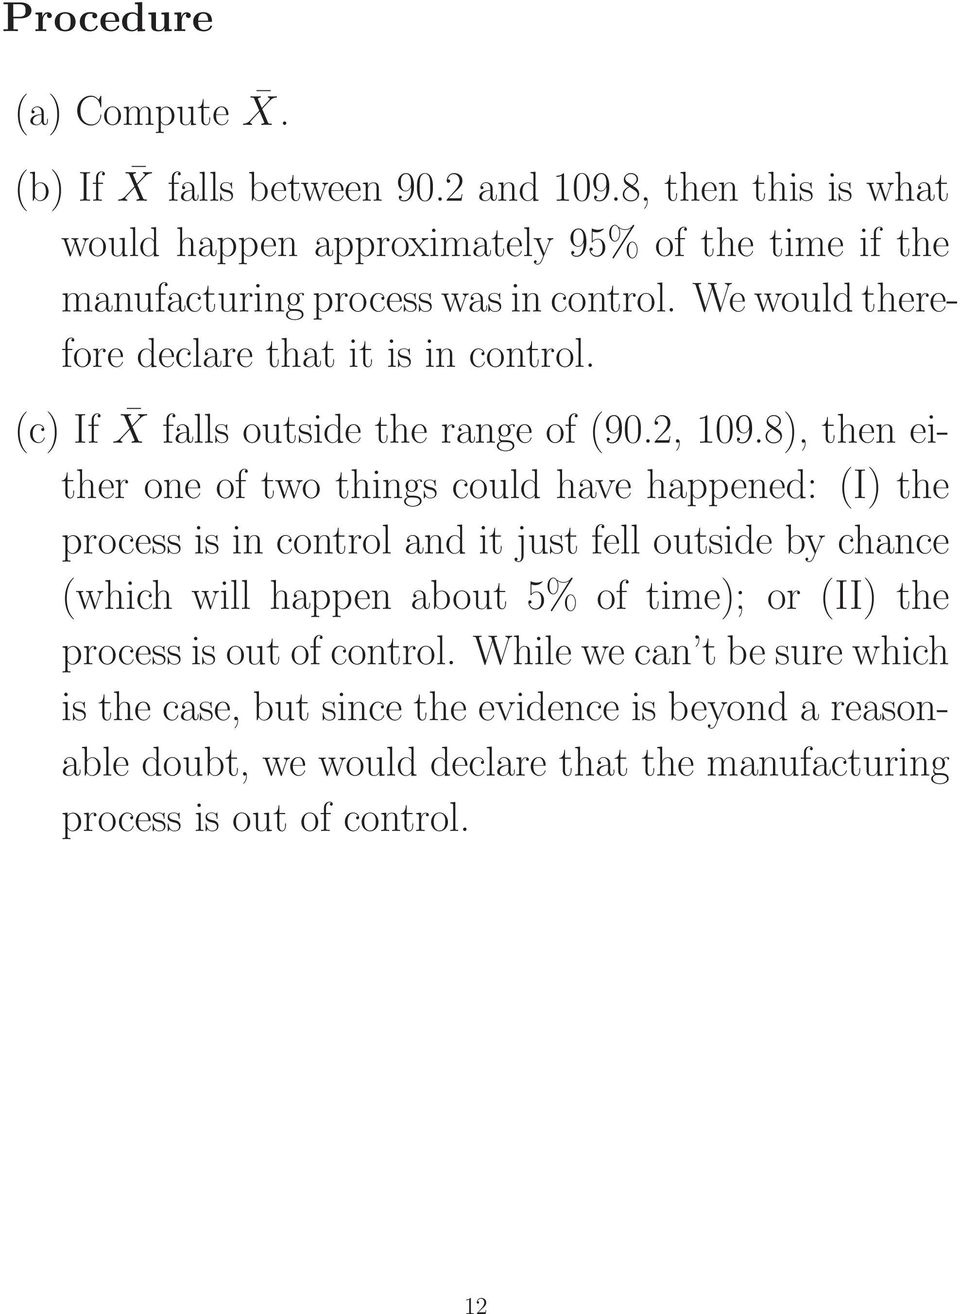 We would therefore declare that it is in control. (c) If X falls outside the range of (90.2, 109.